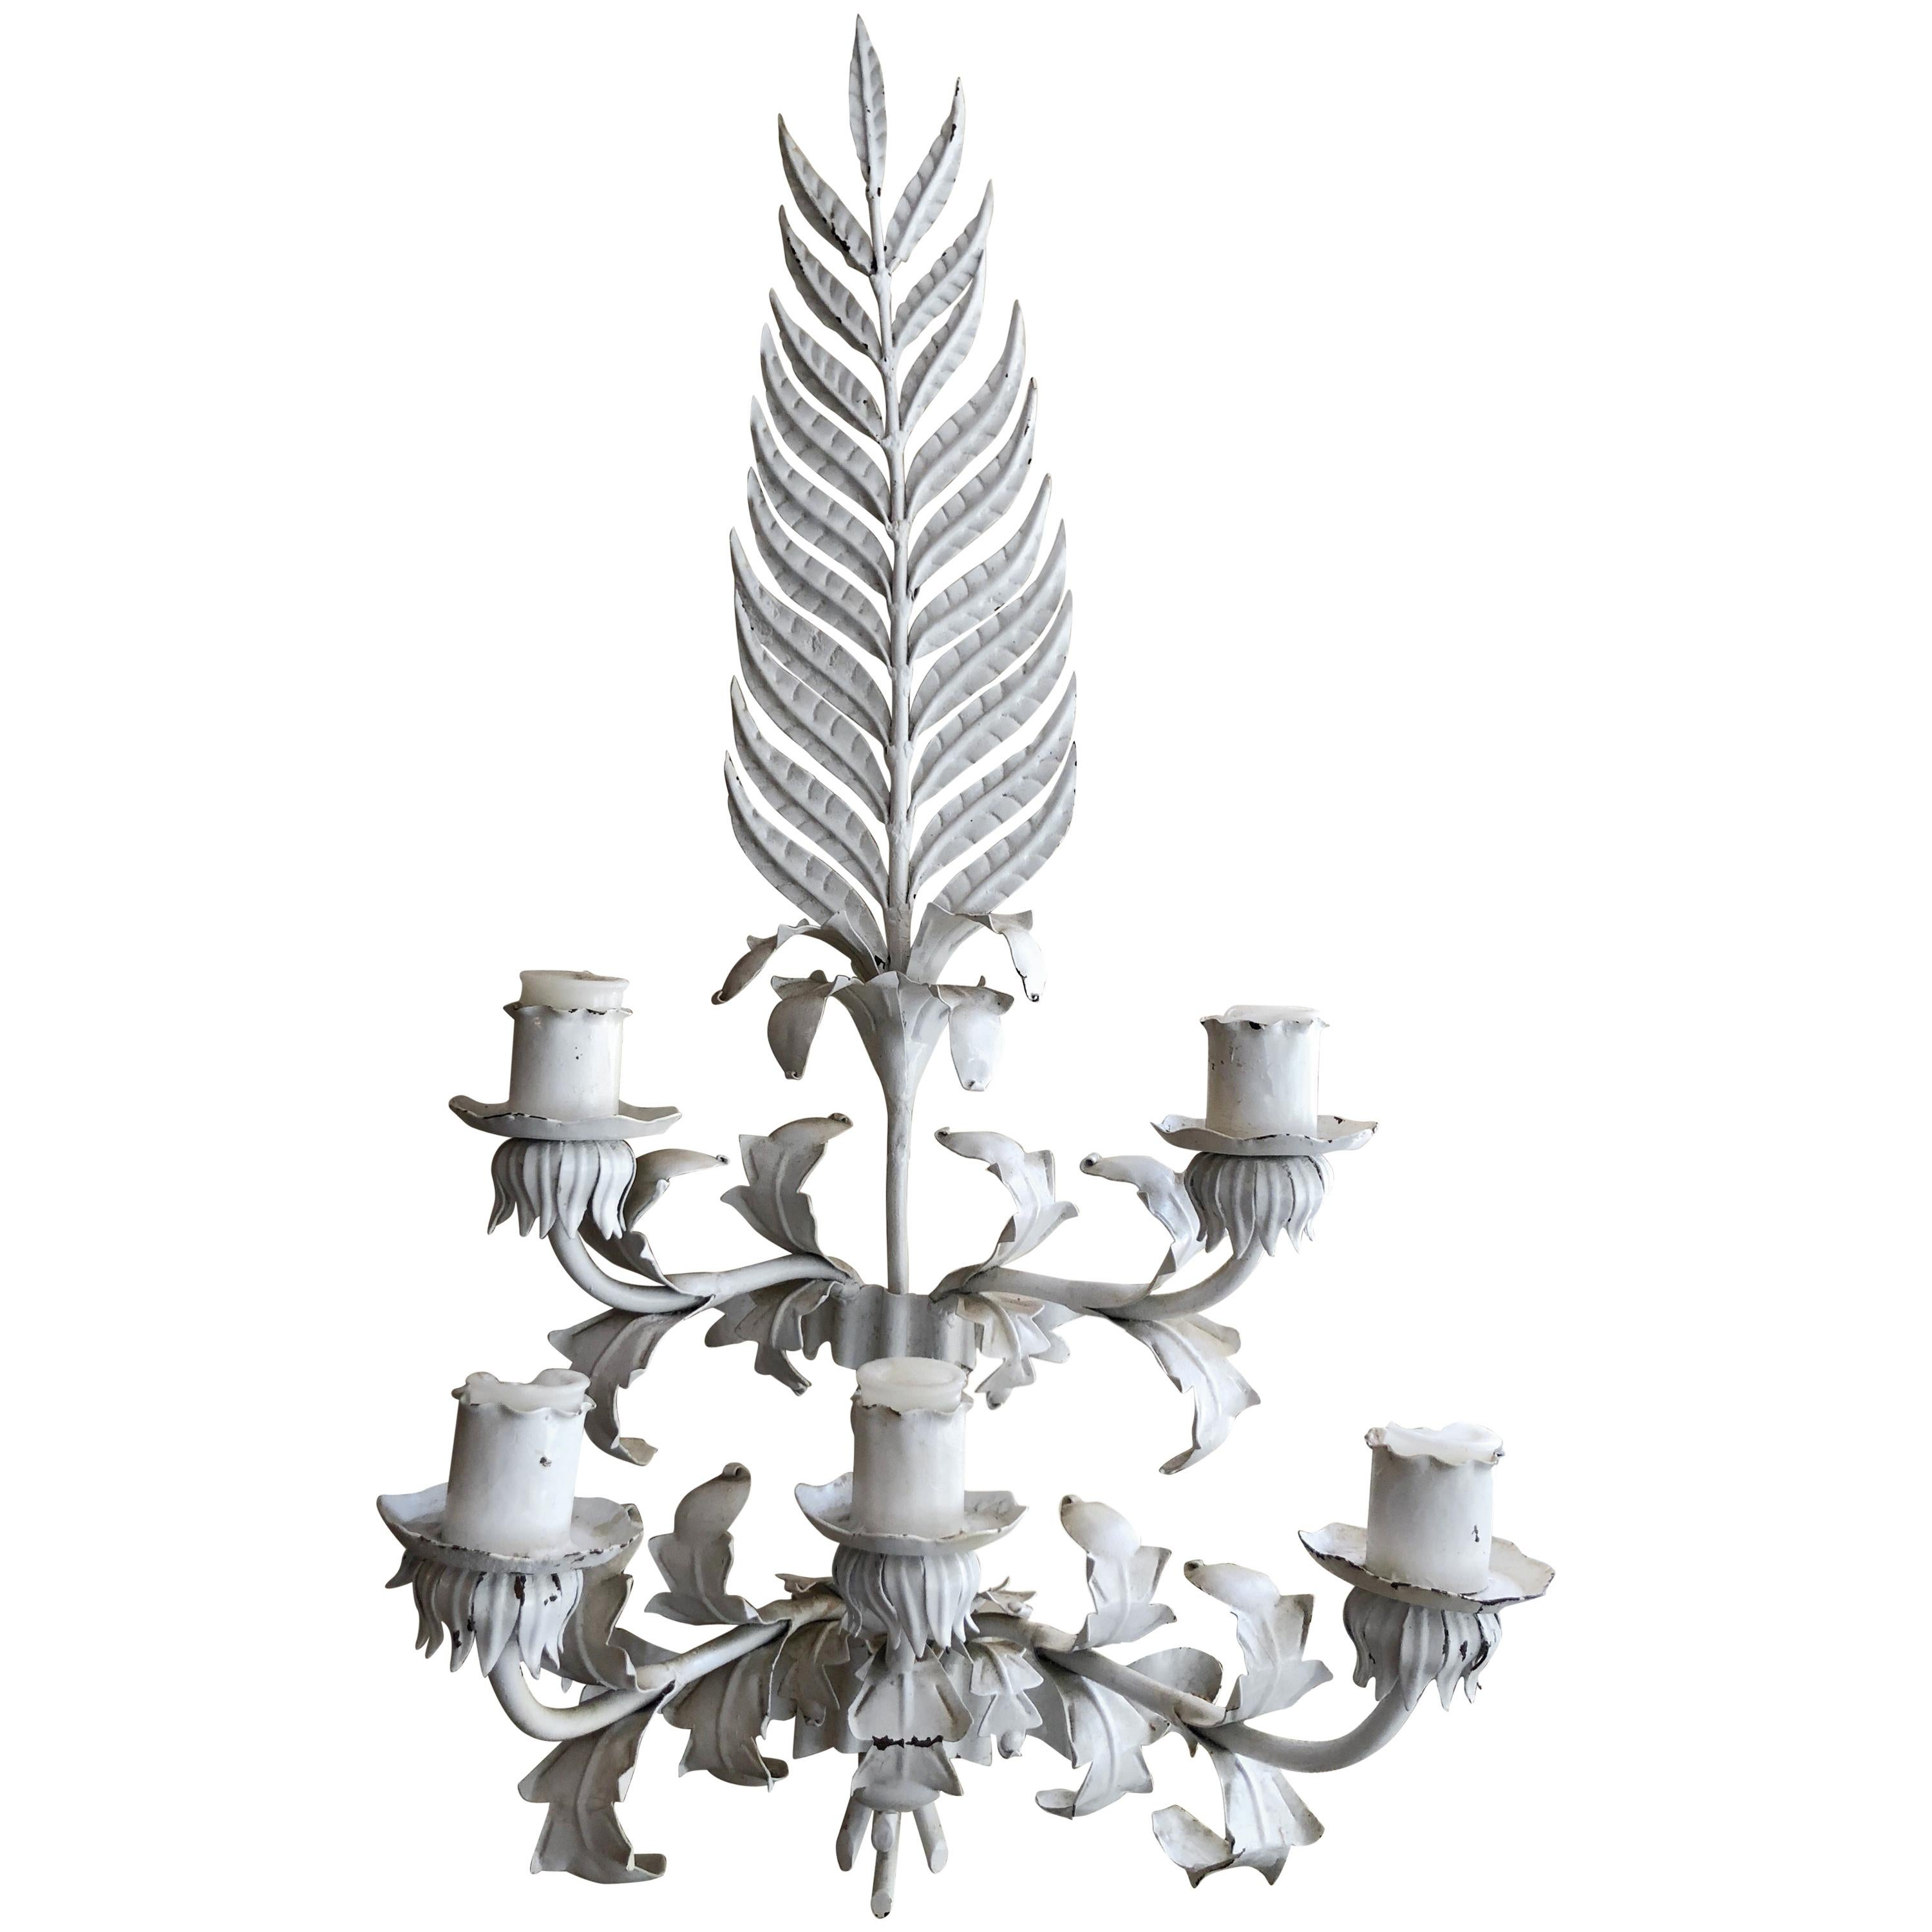 Huge White Hollywood Regency Iron wall Sconce